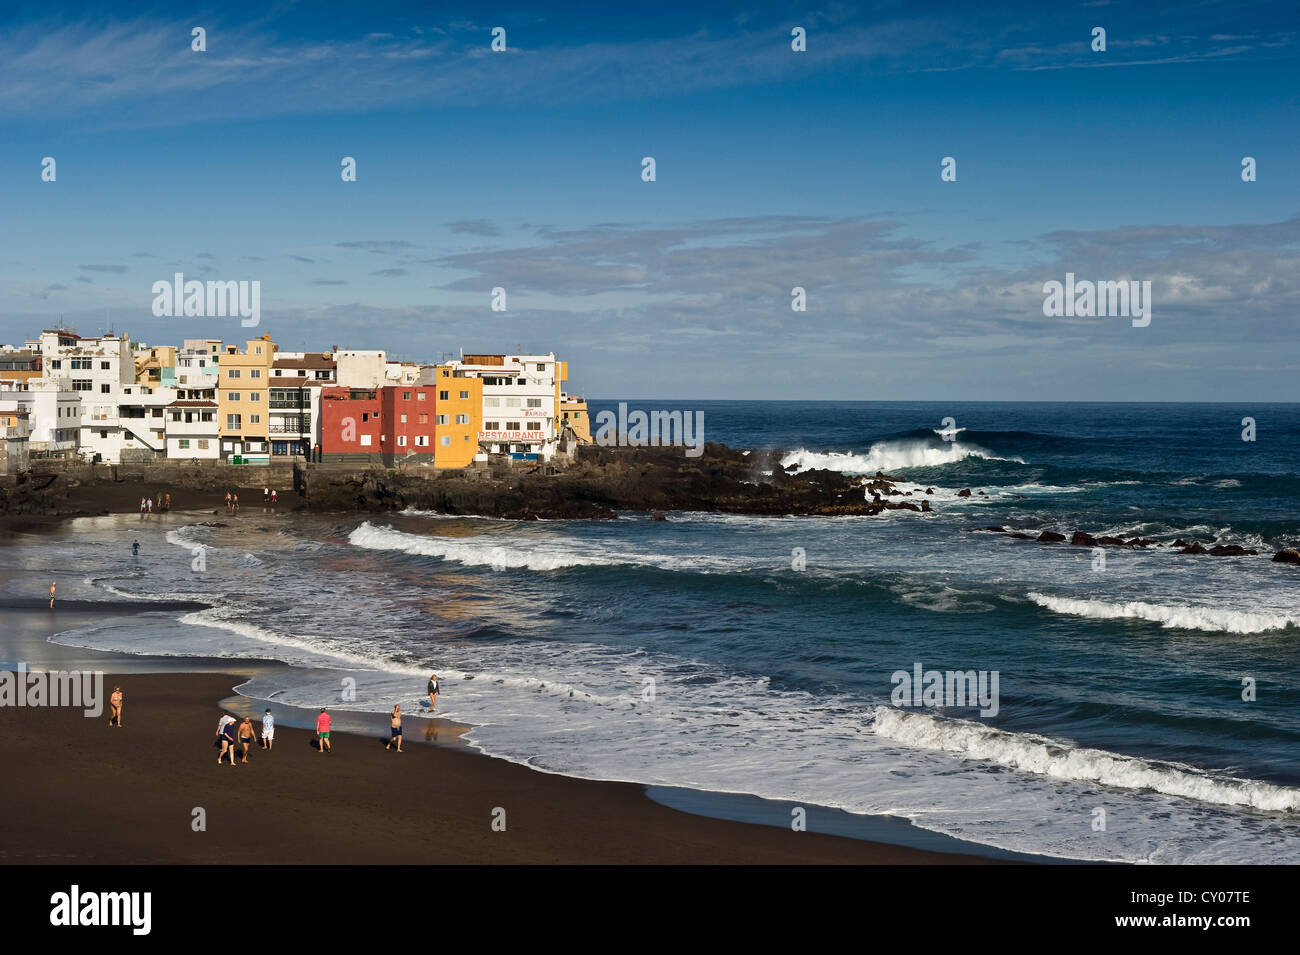 Beach of playa jardin punta brava puerto de la cruz tenerife stock photo royalty free image - Playa puerto de la cruz tenerife ...